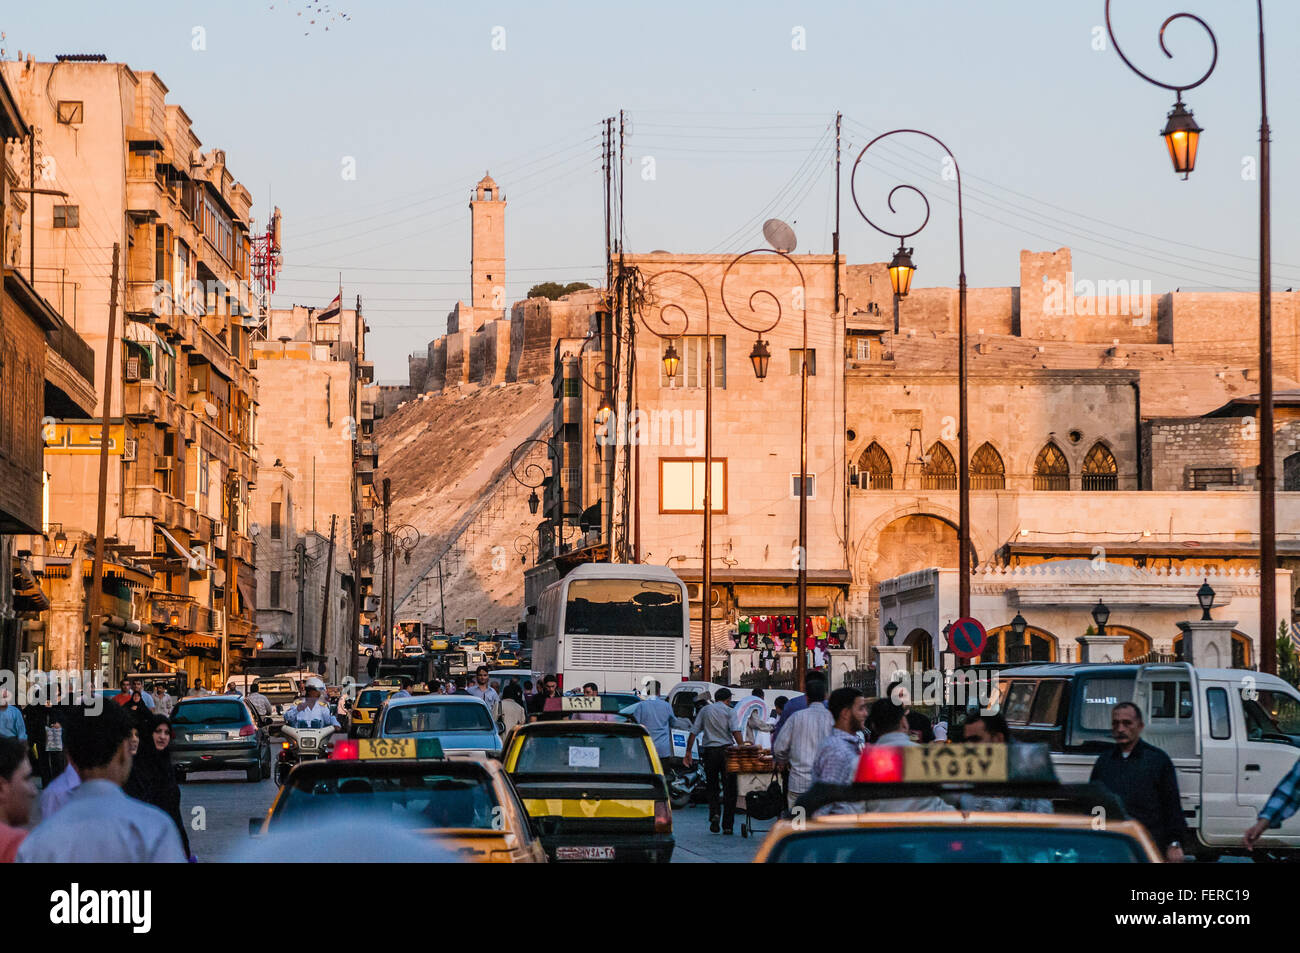 Busy Street Amidst Houses In Old Town - Stock Image